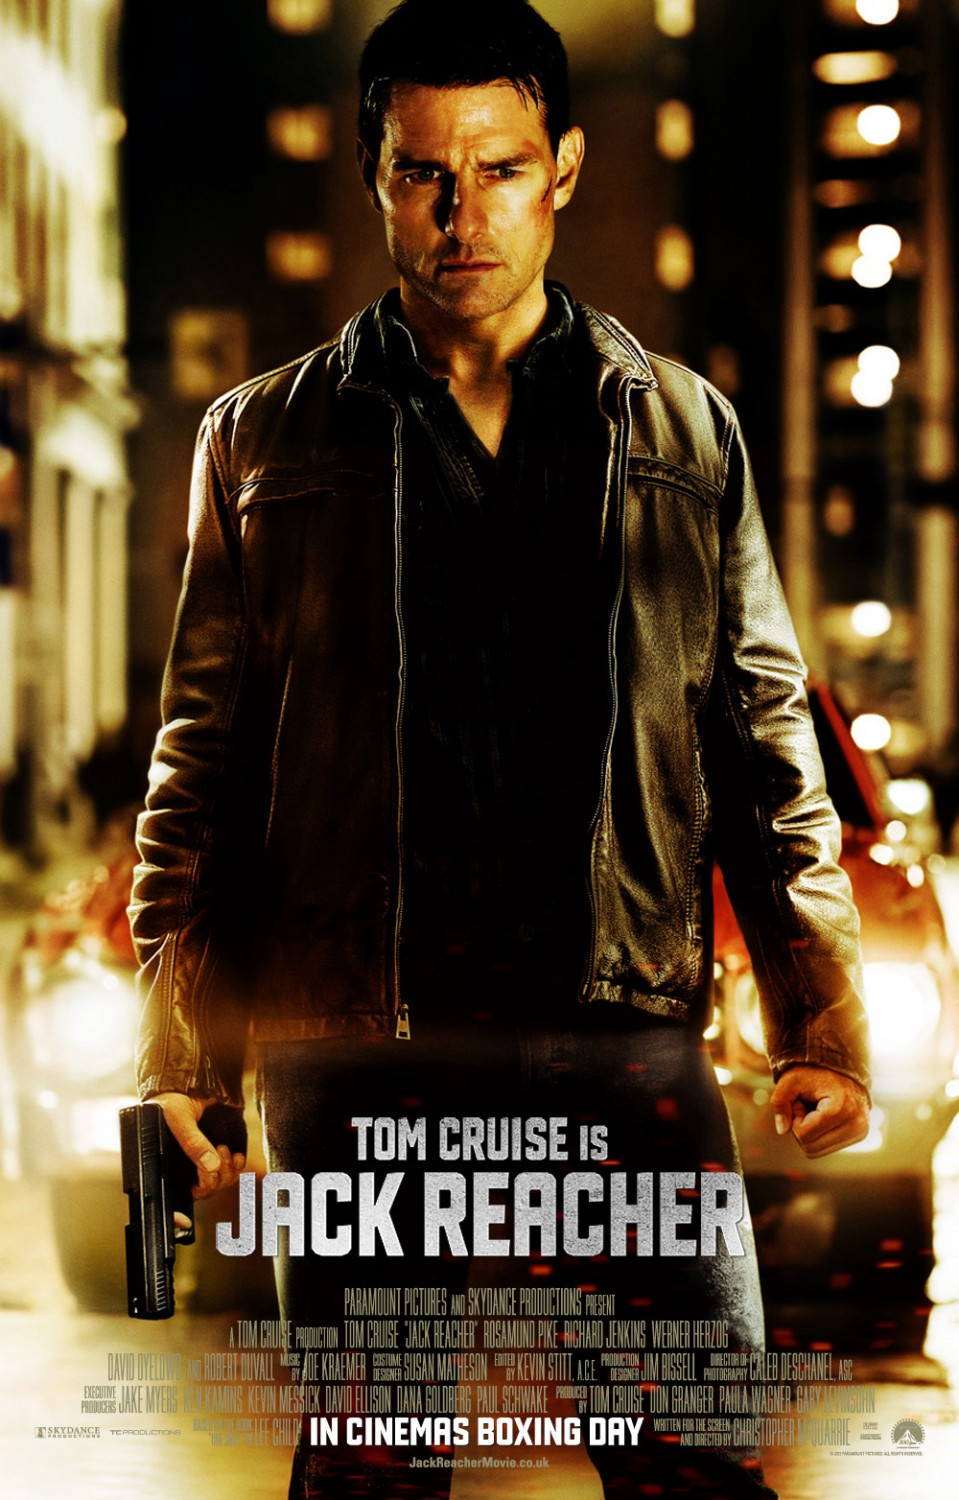 6. Jack Reacher, de Christopher McQuarrie, 2012